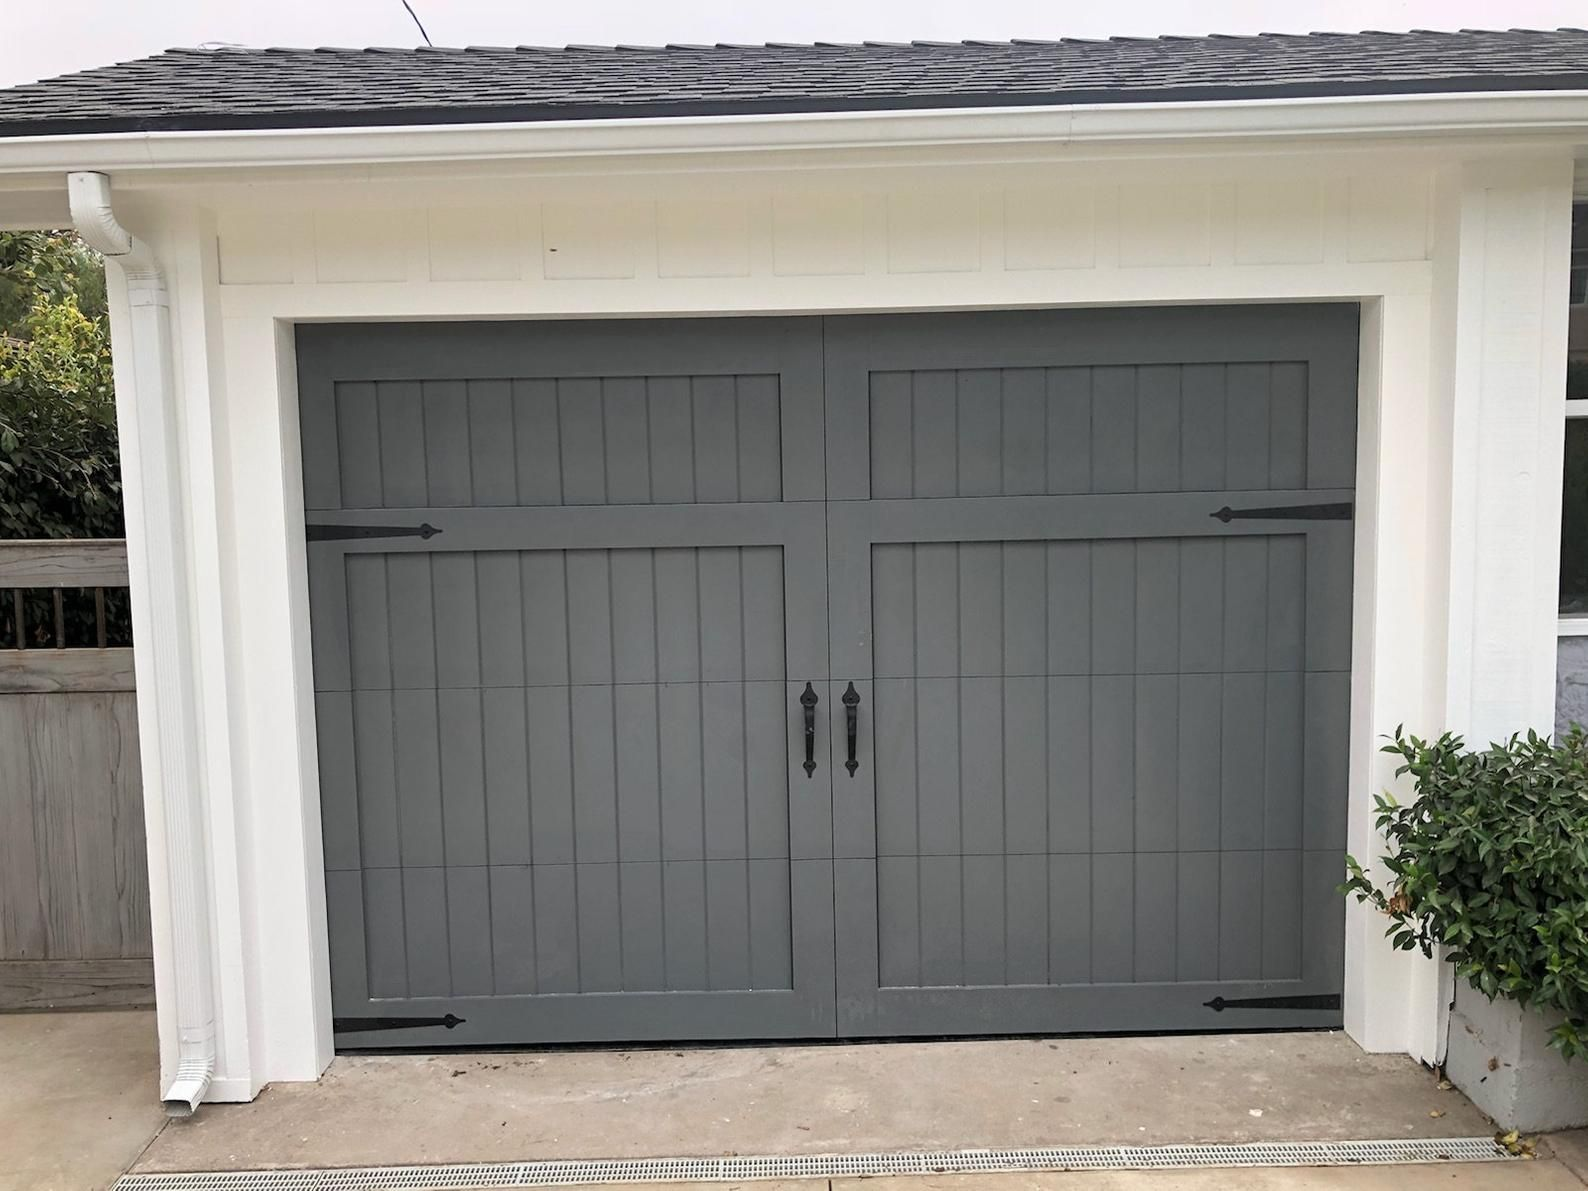 Solid Wooden Garage Door Get Custom Design Or Size Wooden Garage Doors Garage Door Design Garage Door Styles